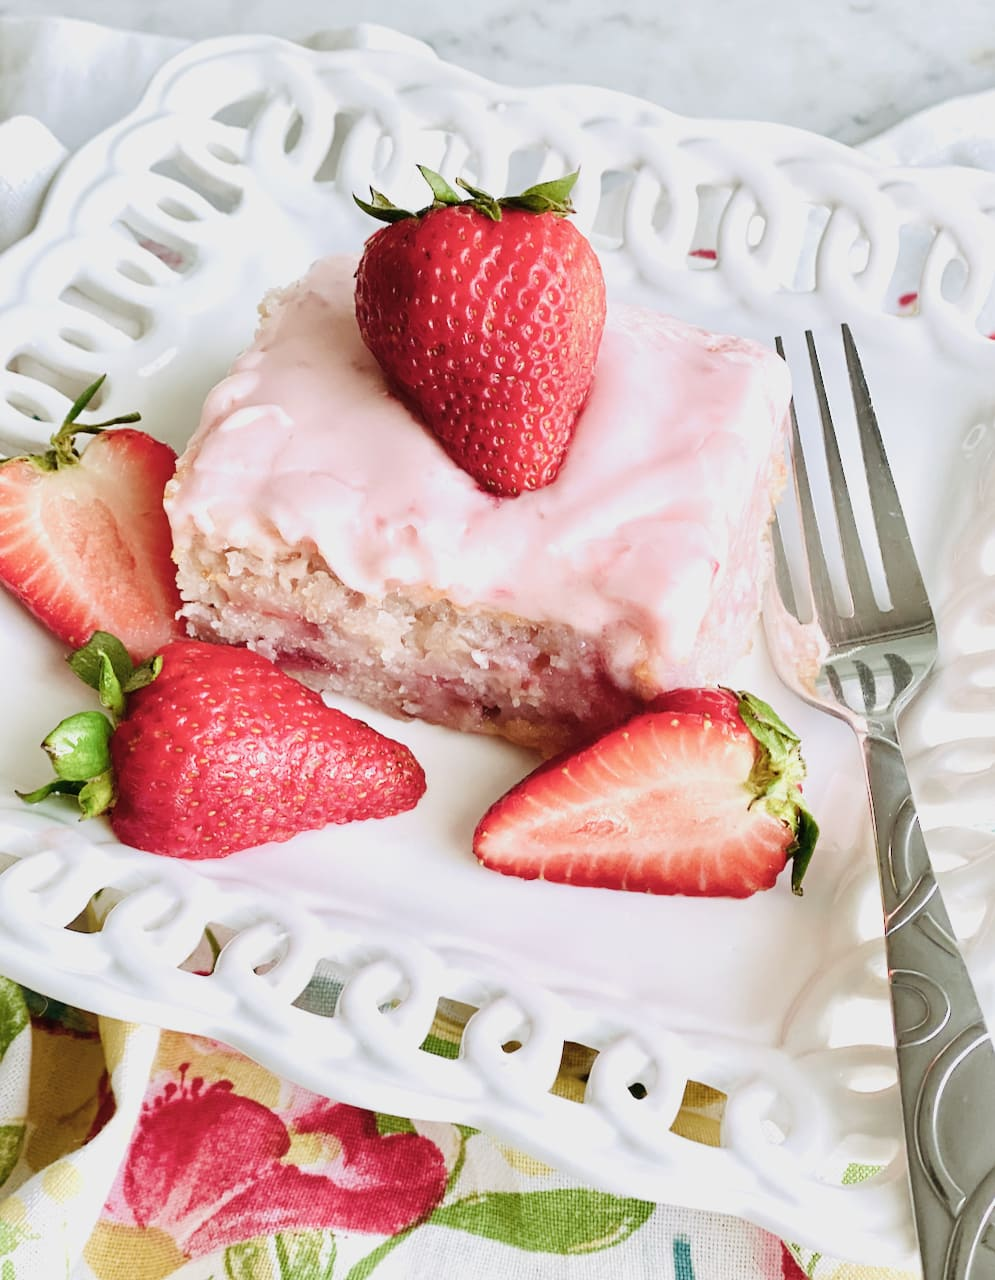 slice of strawberry cake on a white plate surrounded by strawberries